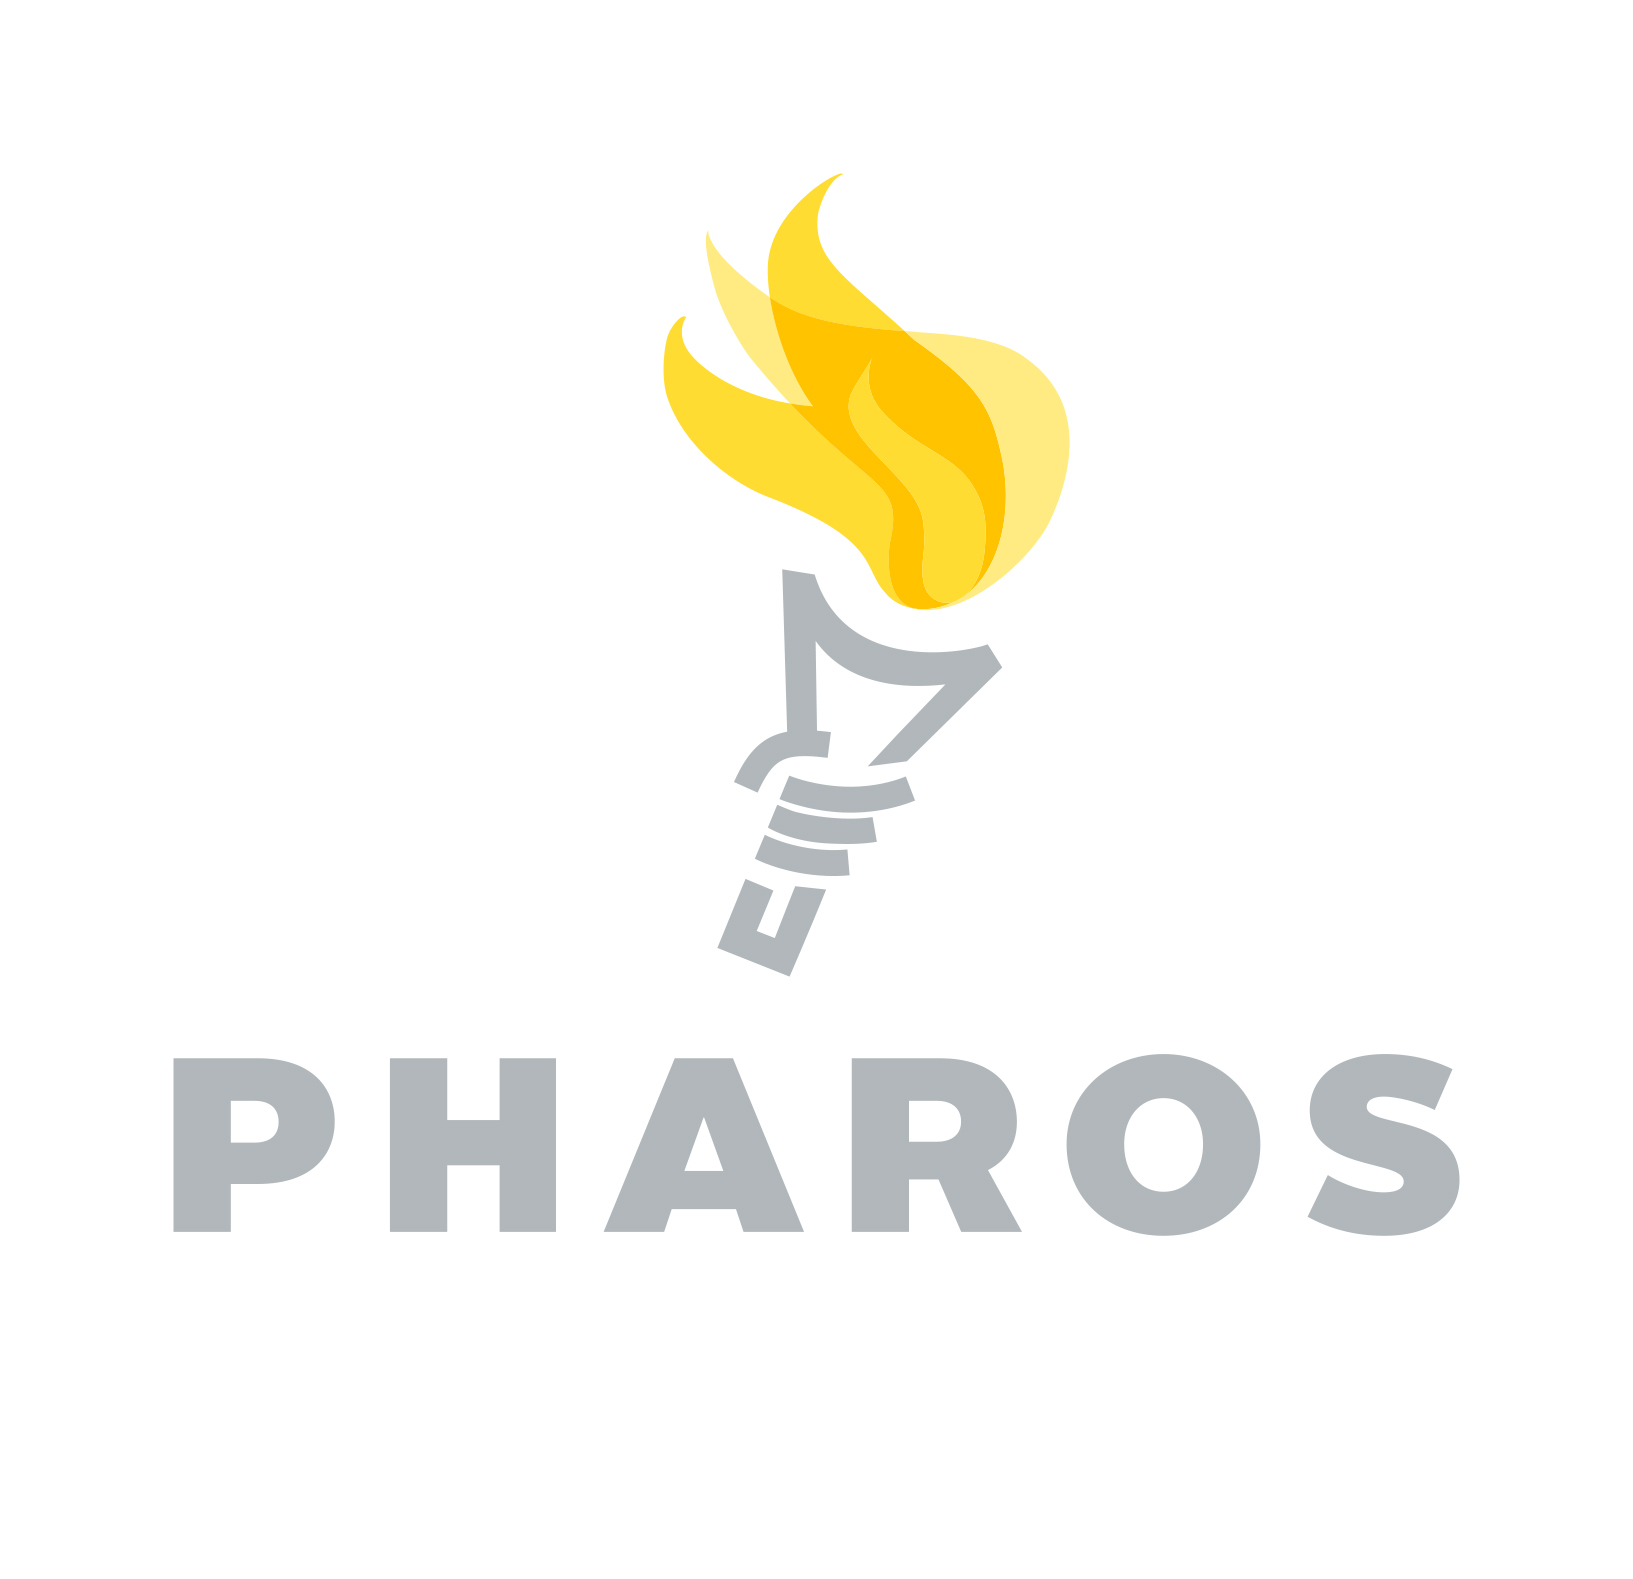 pharos_logo_rgb_full-color_300ppi_1_0